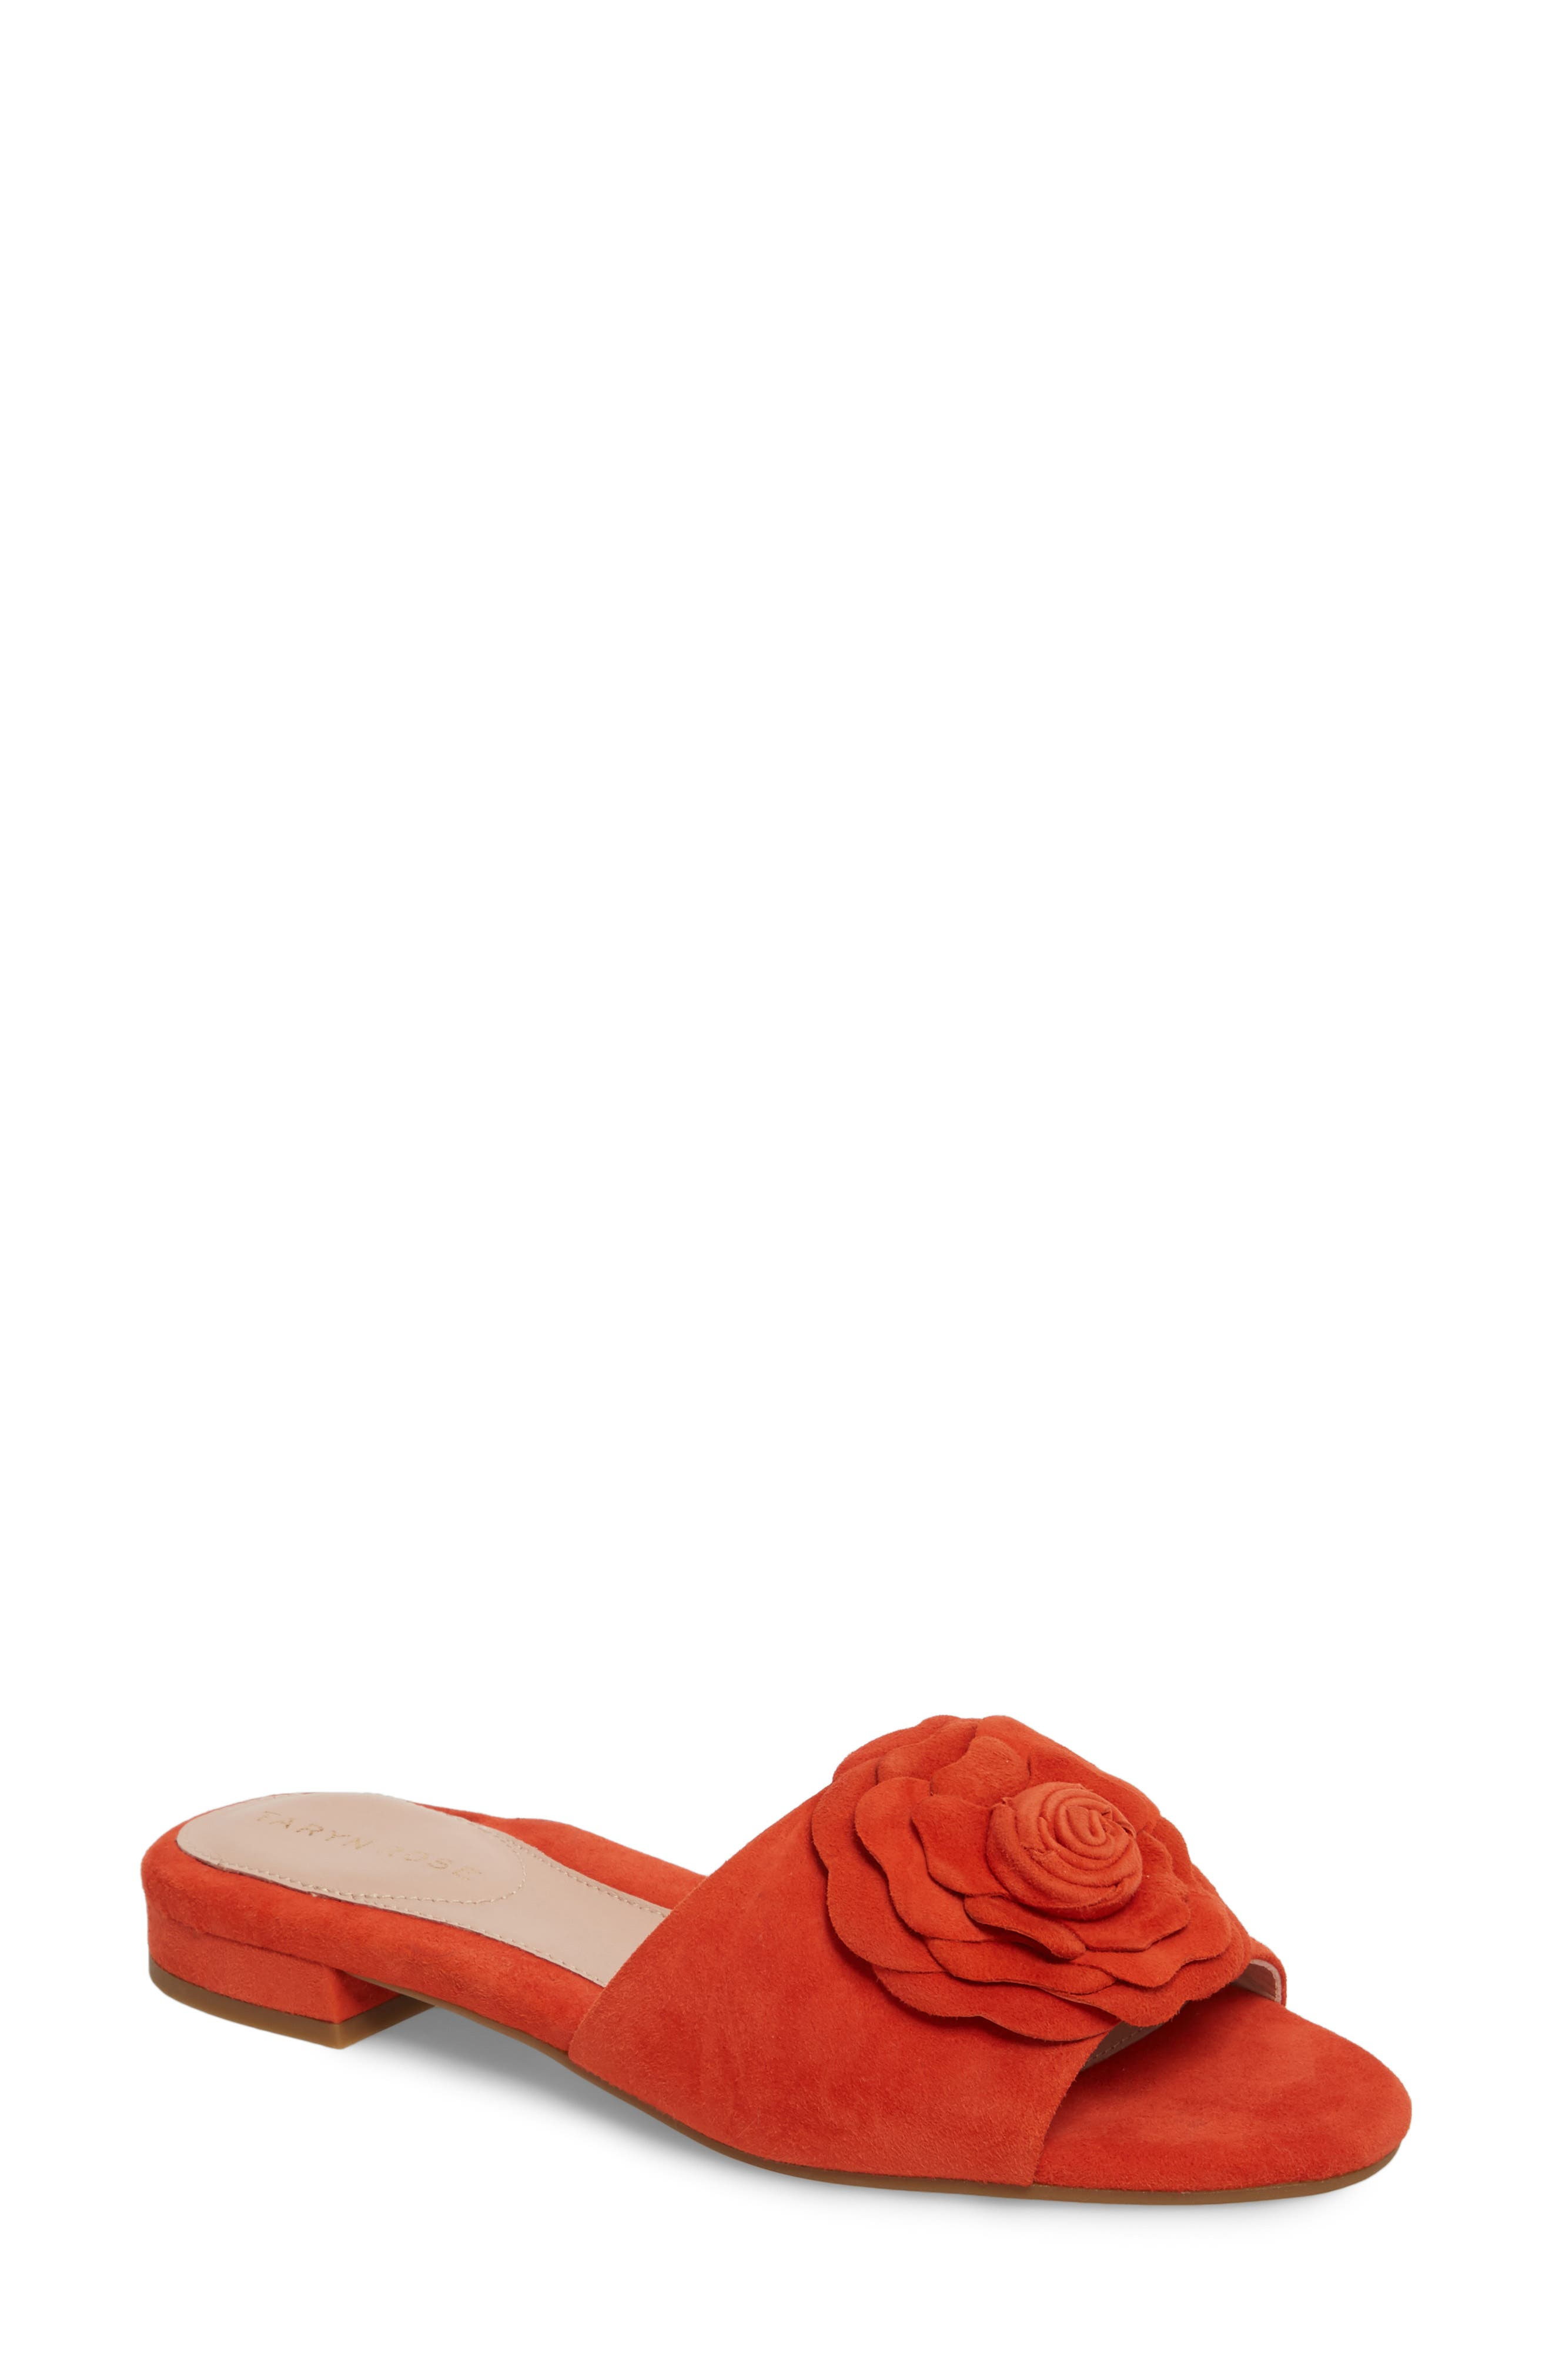 Violet Flower Slide Sandal,                         Main,                         color, Poppy Suede